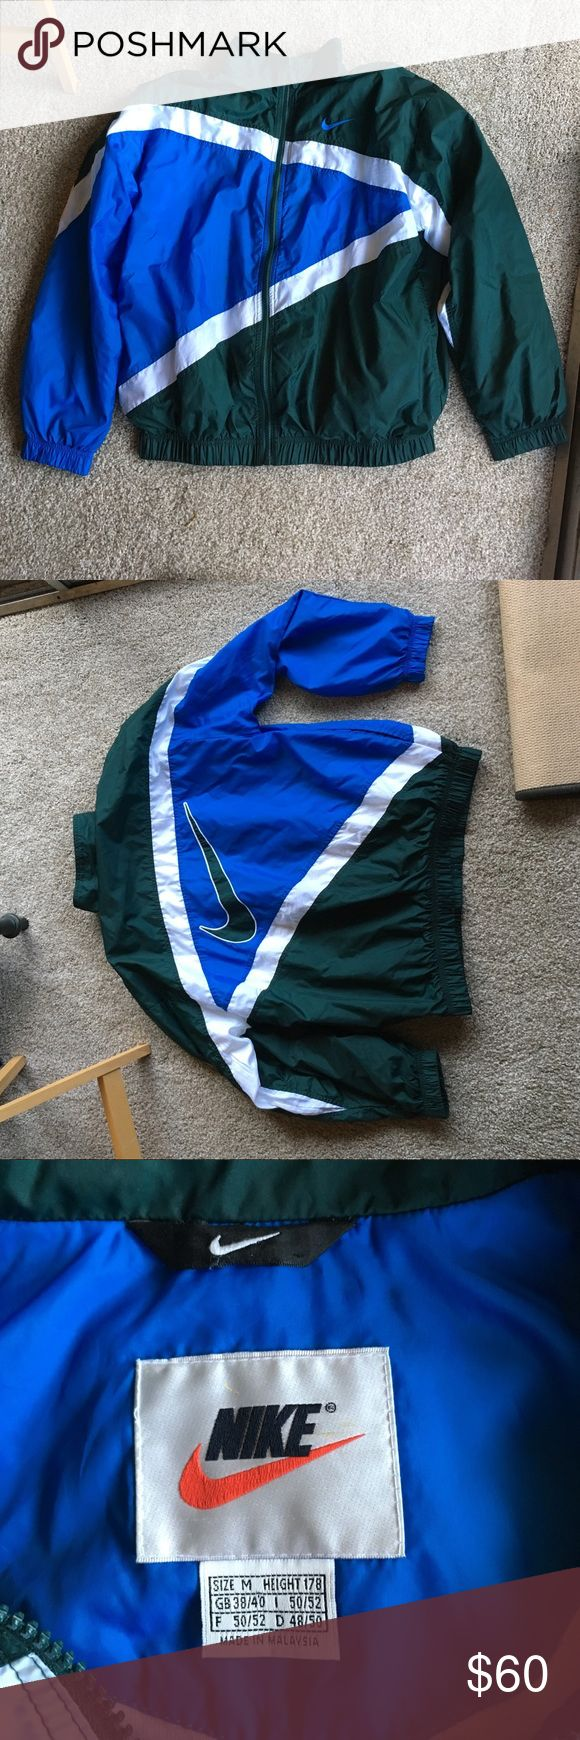 Vintage Nike Windbreaker Vintage 90's warmup jacket. Lightweight. Fantastic condition for how old it is. No rips or tears. Size medium. Nike Jackets & Coats Windbreakers